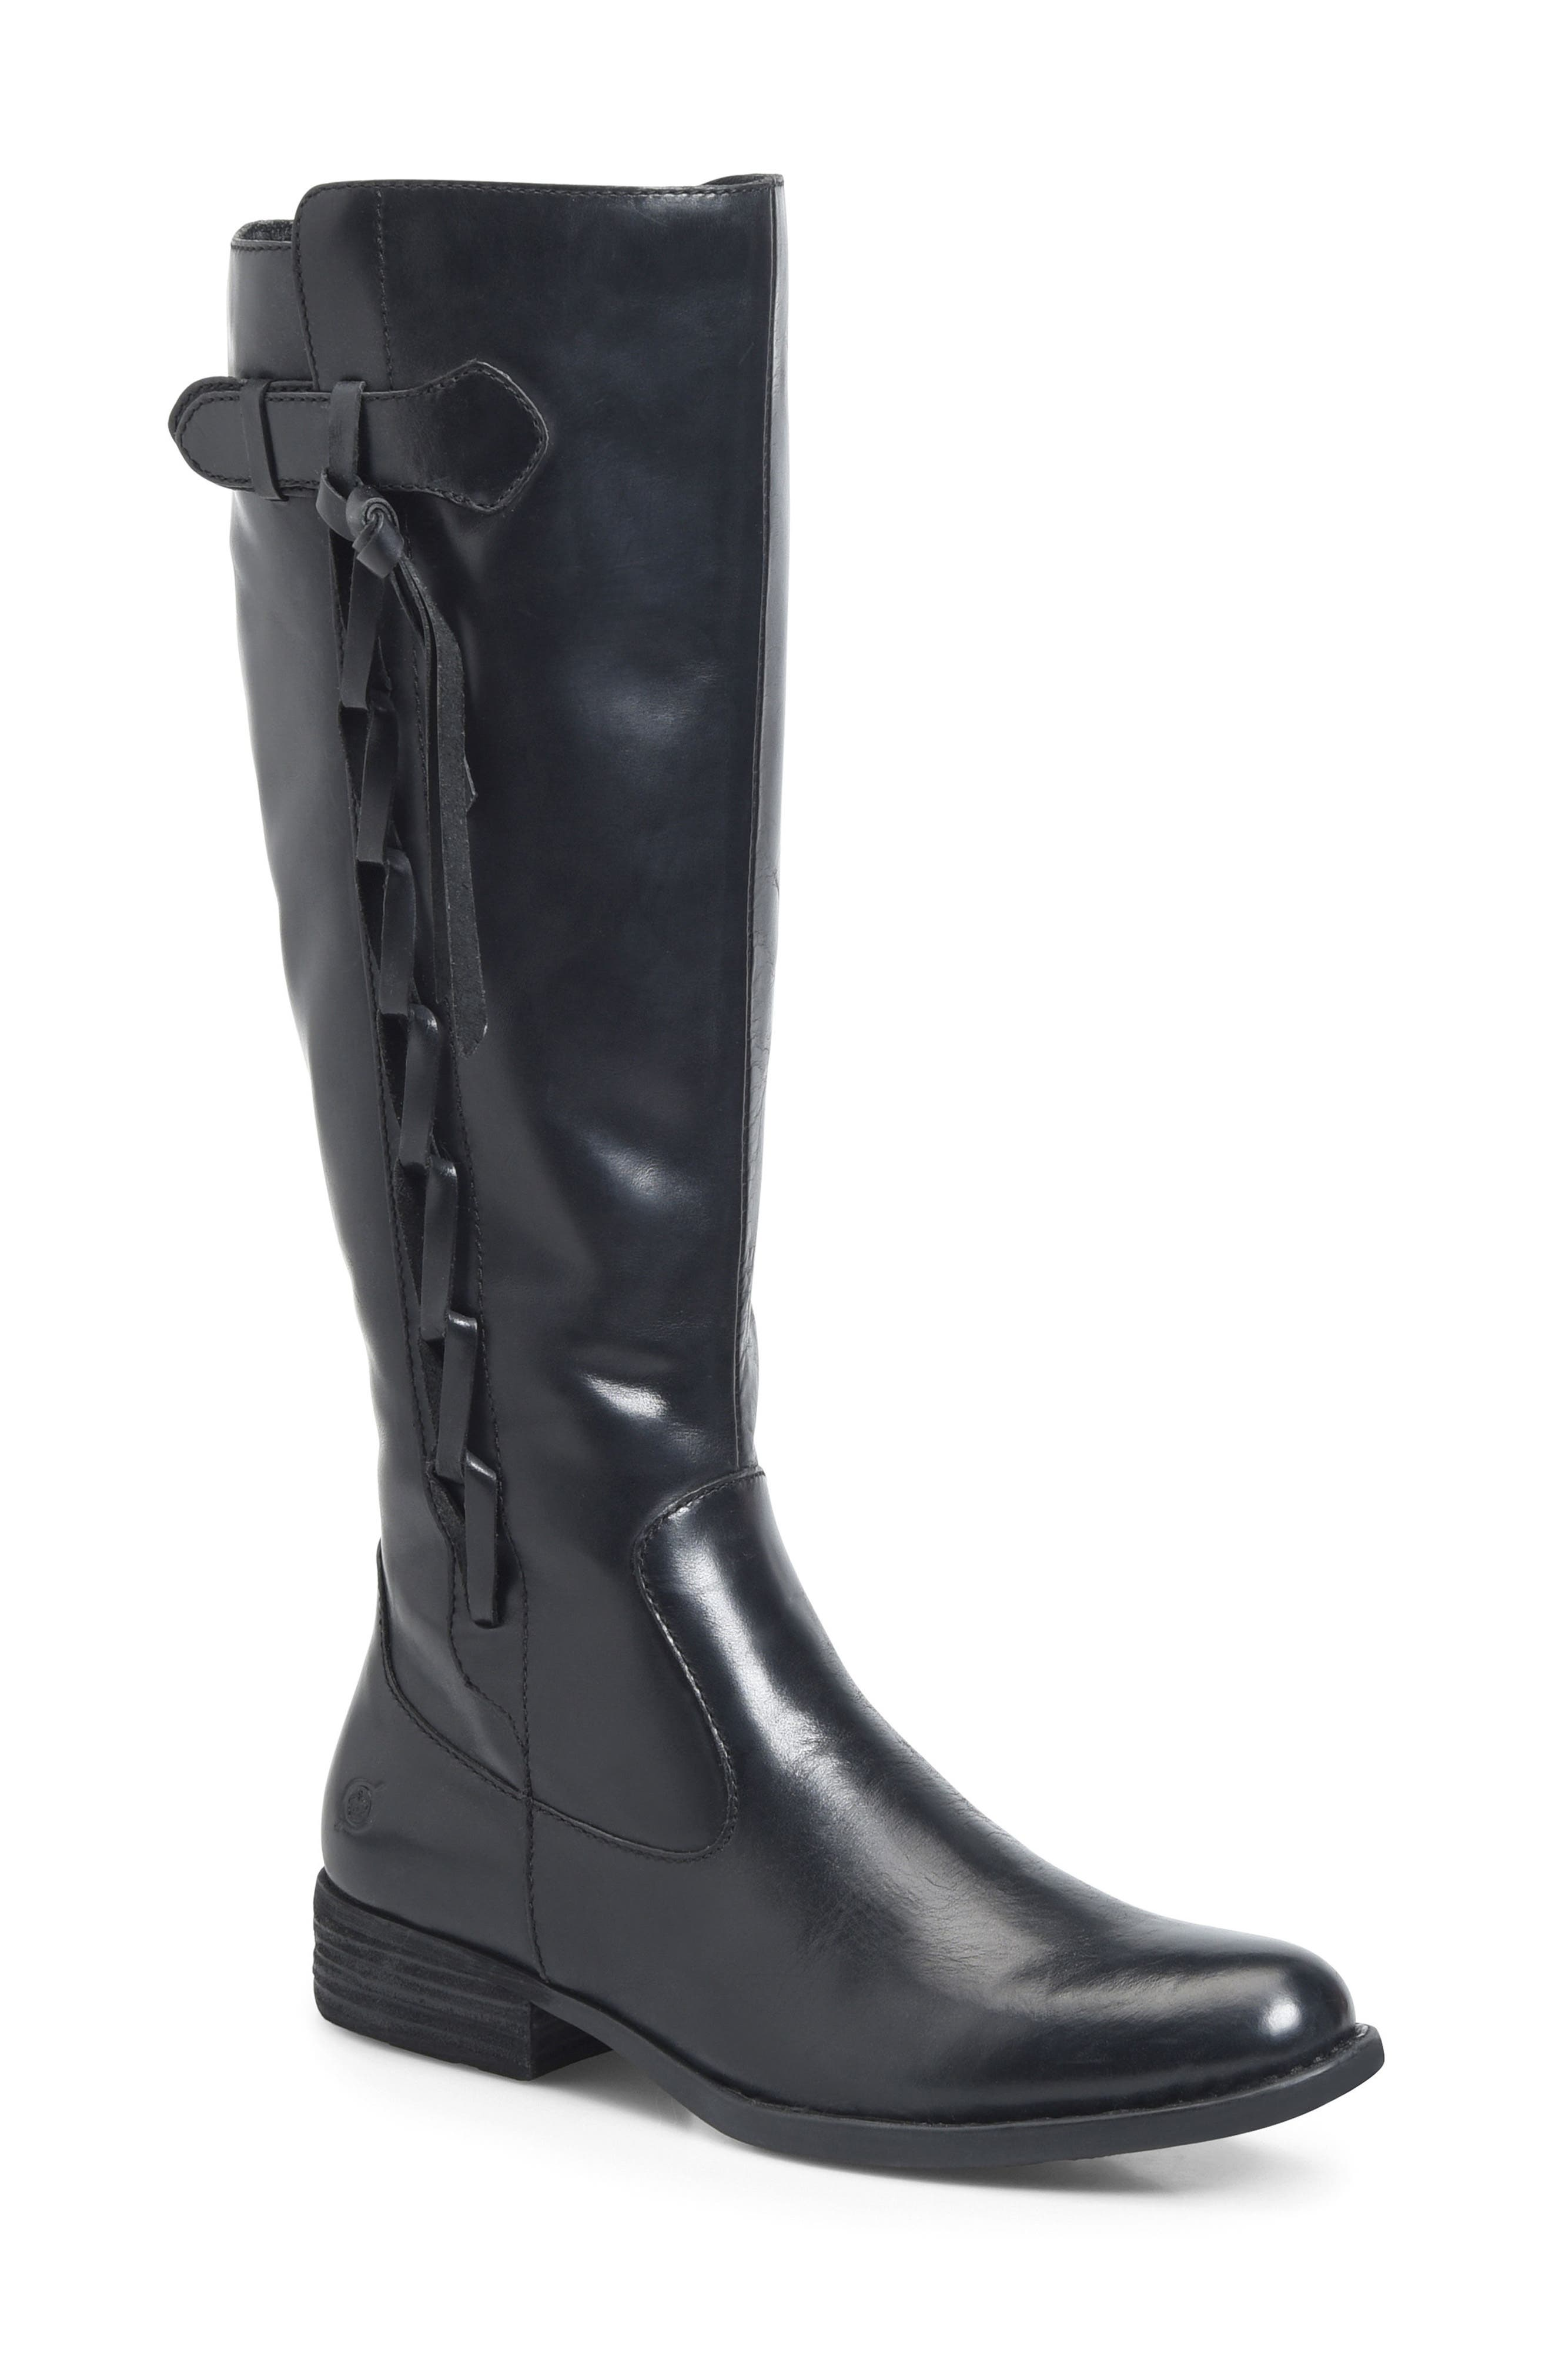 Cook Knee High Boot,                             Main thumbnail 1, color,                             001